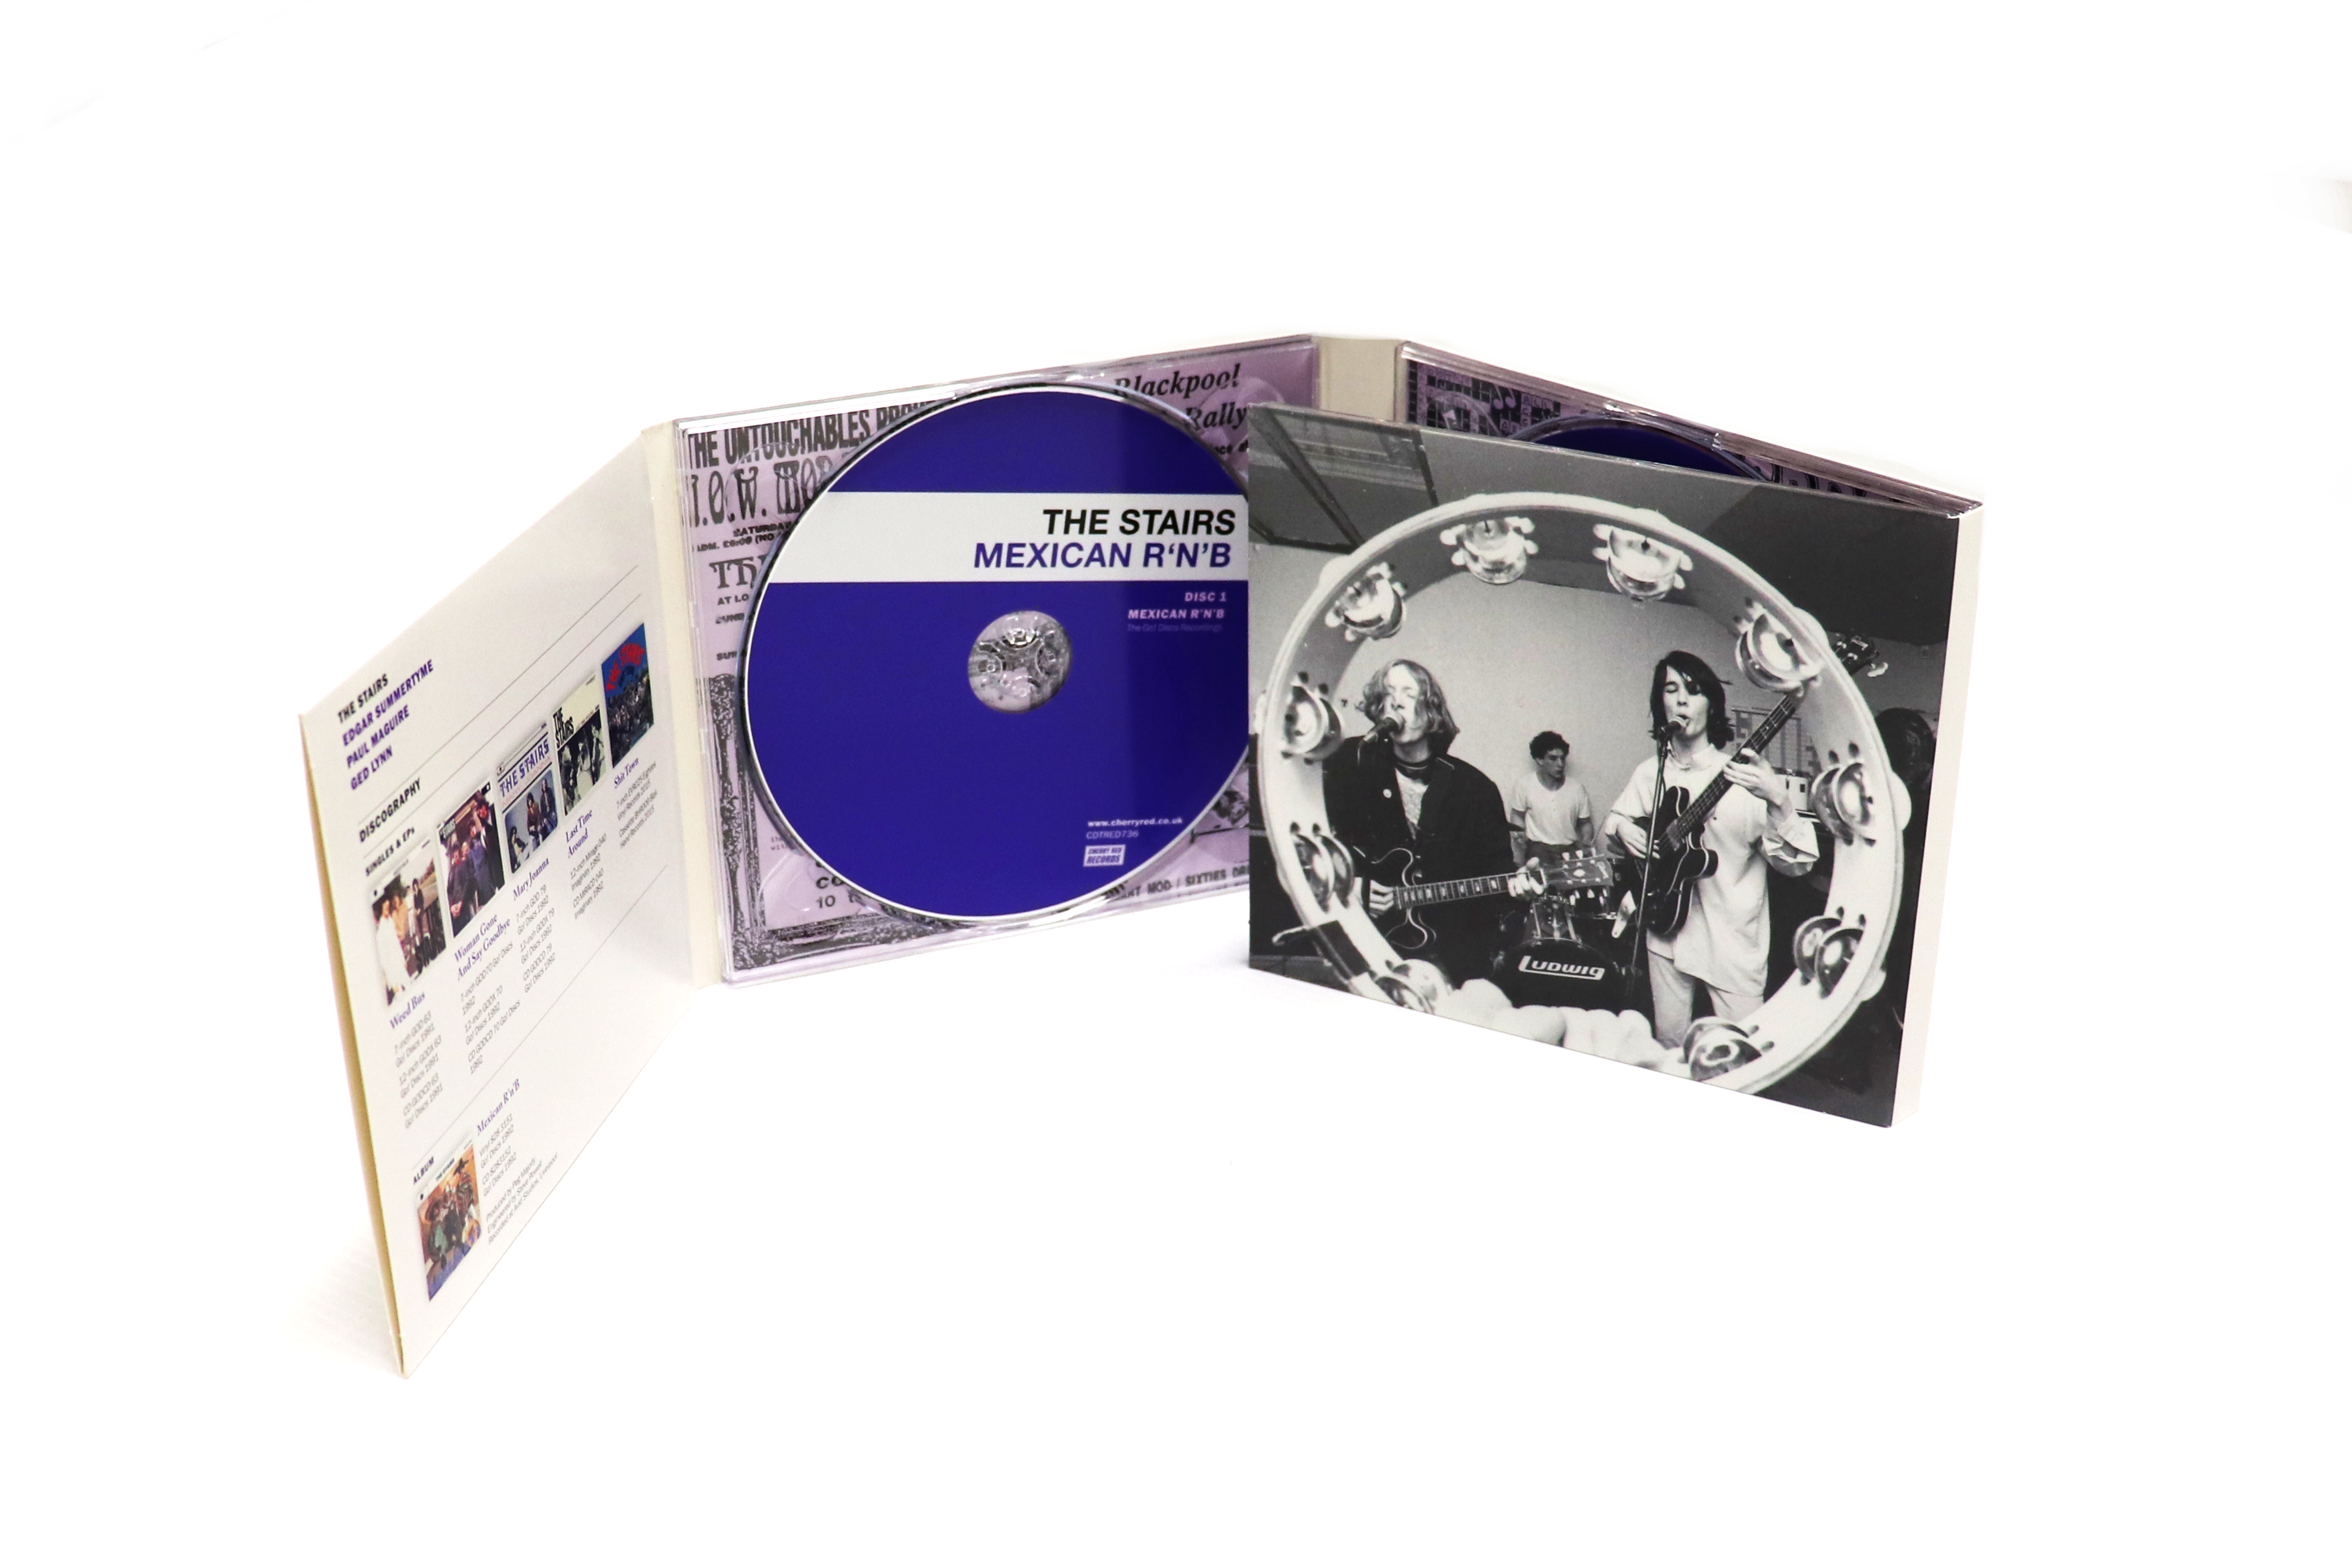 The Stairs: Mexican R'N'B, Deluxe Digipak Edition